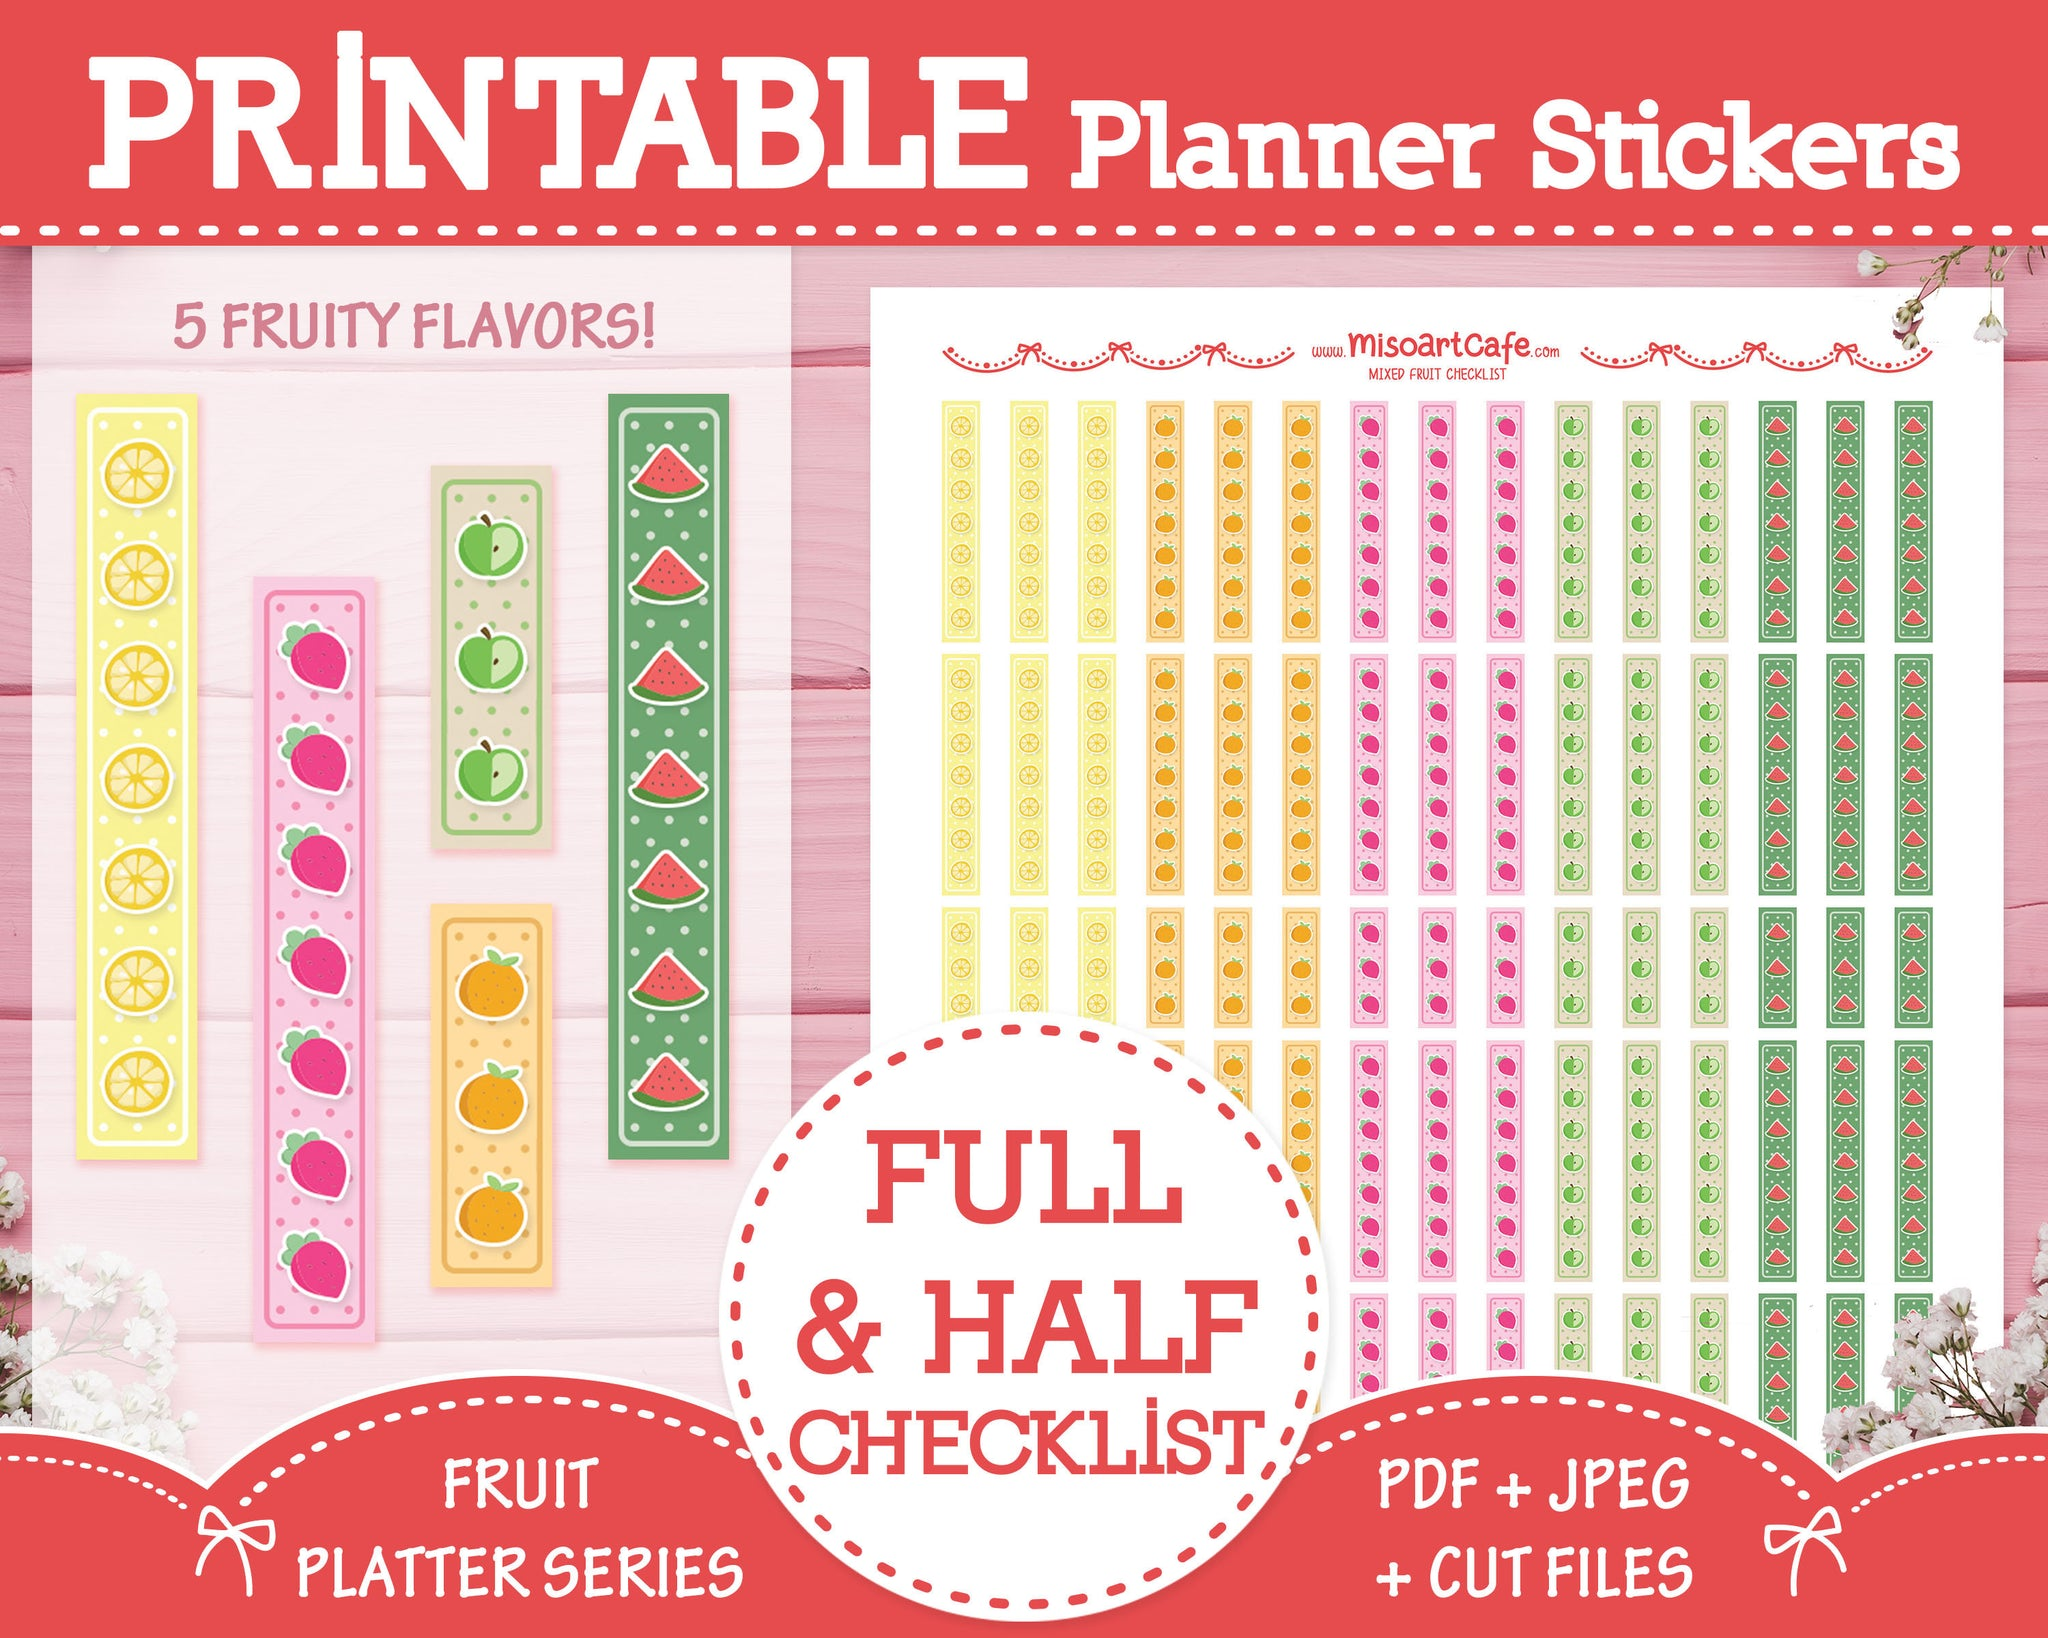 Printable Checklists - Fruit Platter Planner Stickers